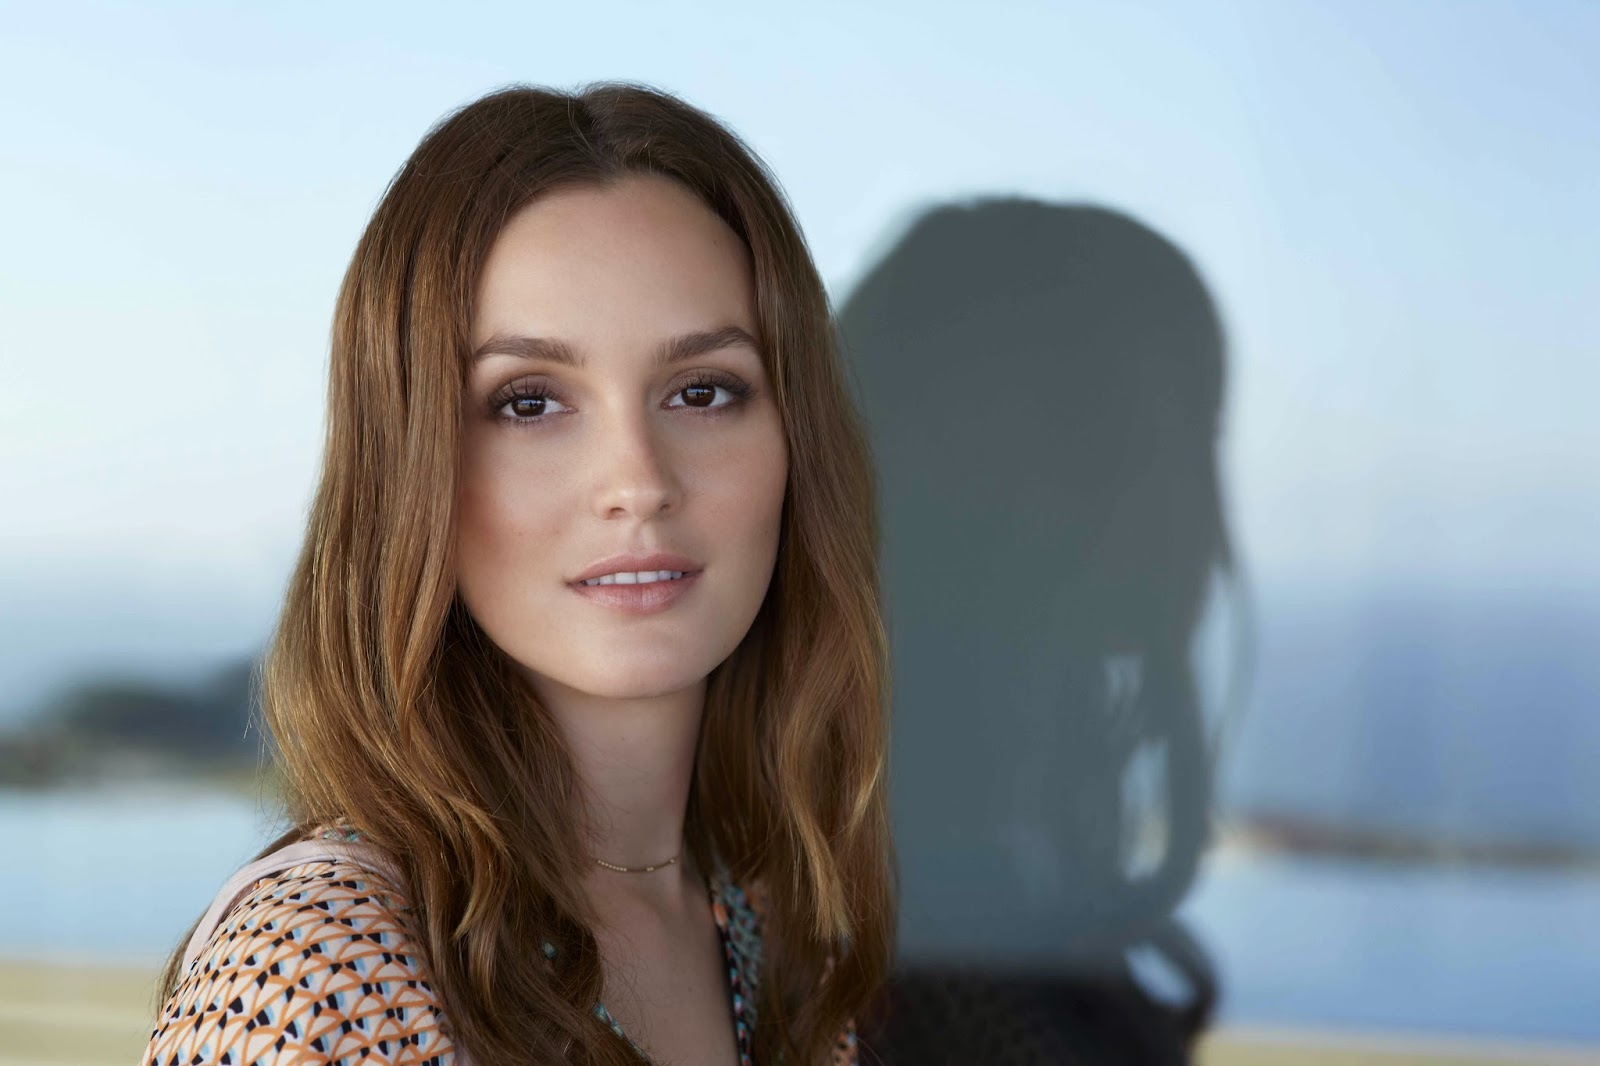 d8ccdcc1e0 Gossip Girl Leighton Meester Becomes Biotherm's Global Spokesperson ...